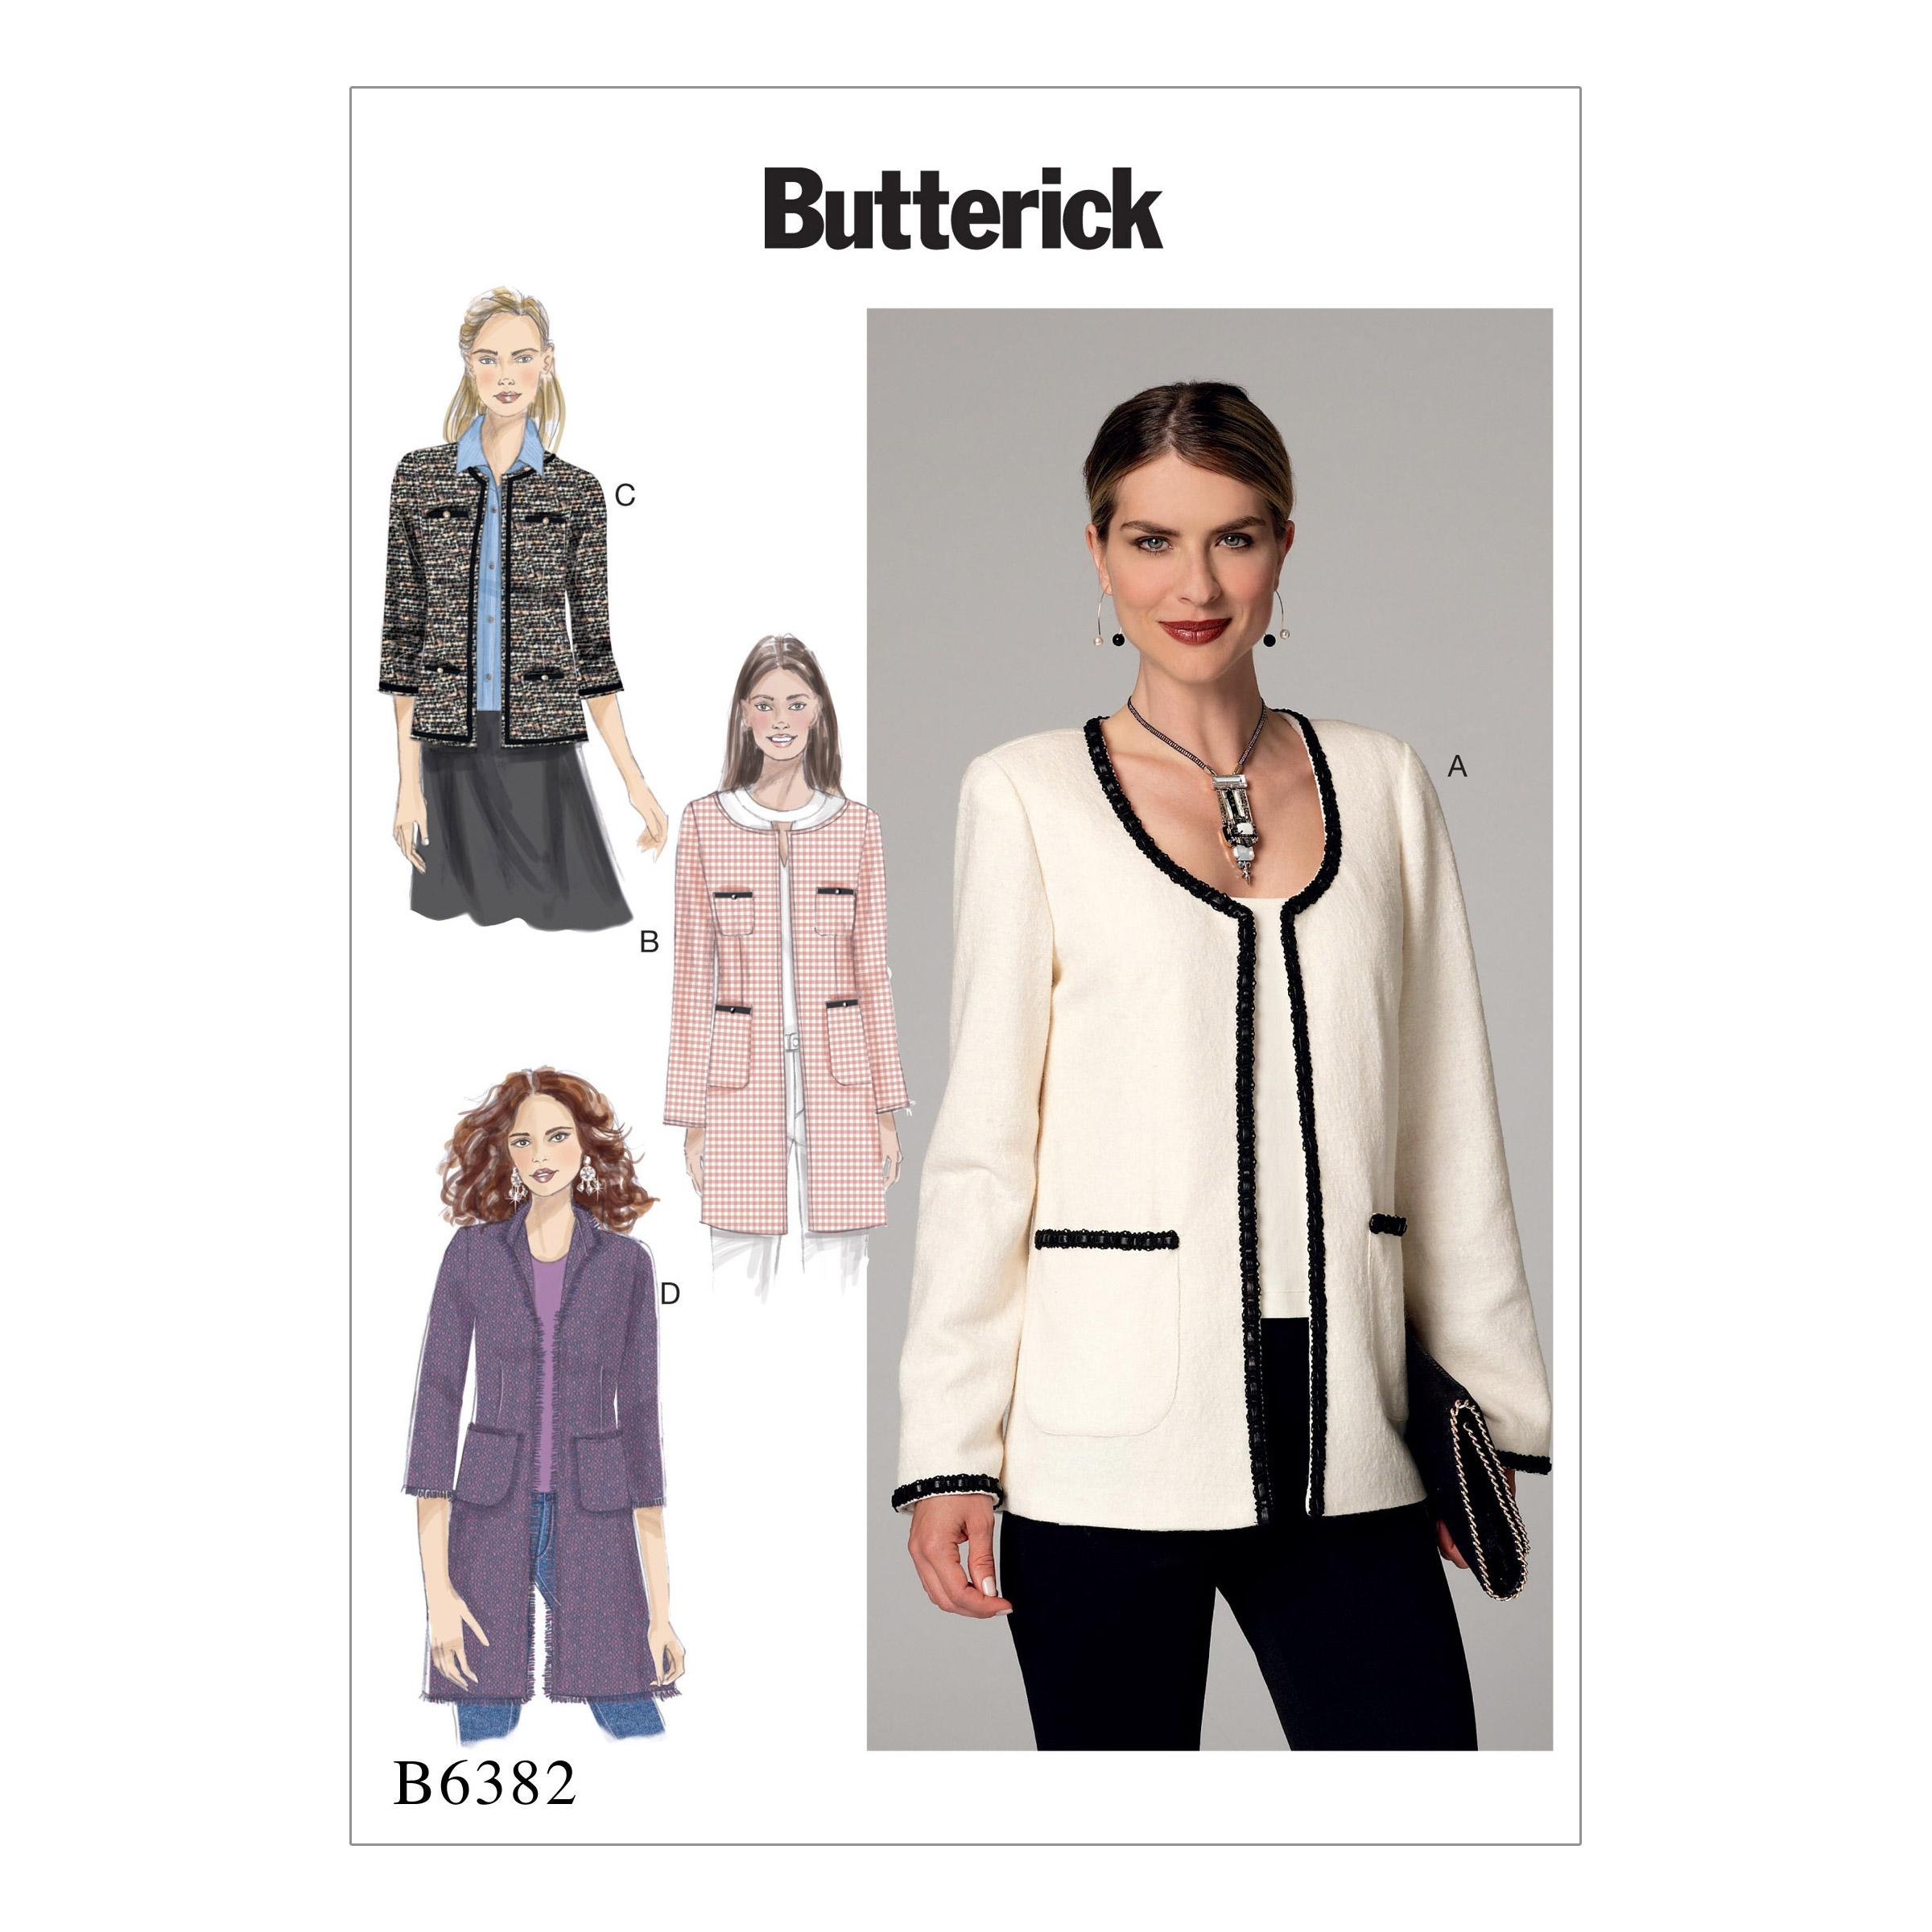 Butterick B6382 Misses' Open-Front Jackets with Patch Pockets